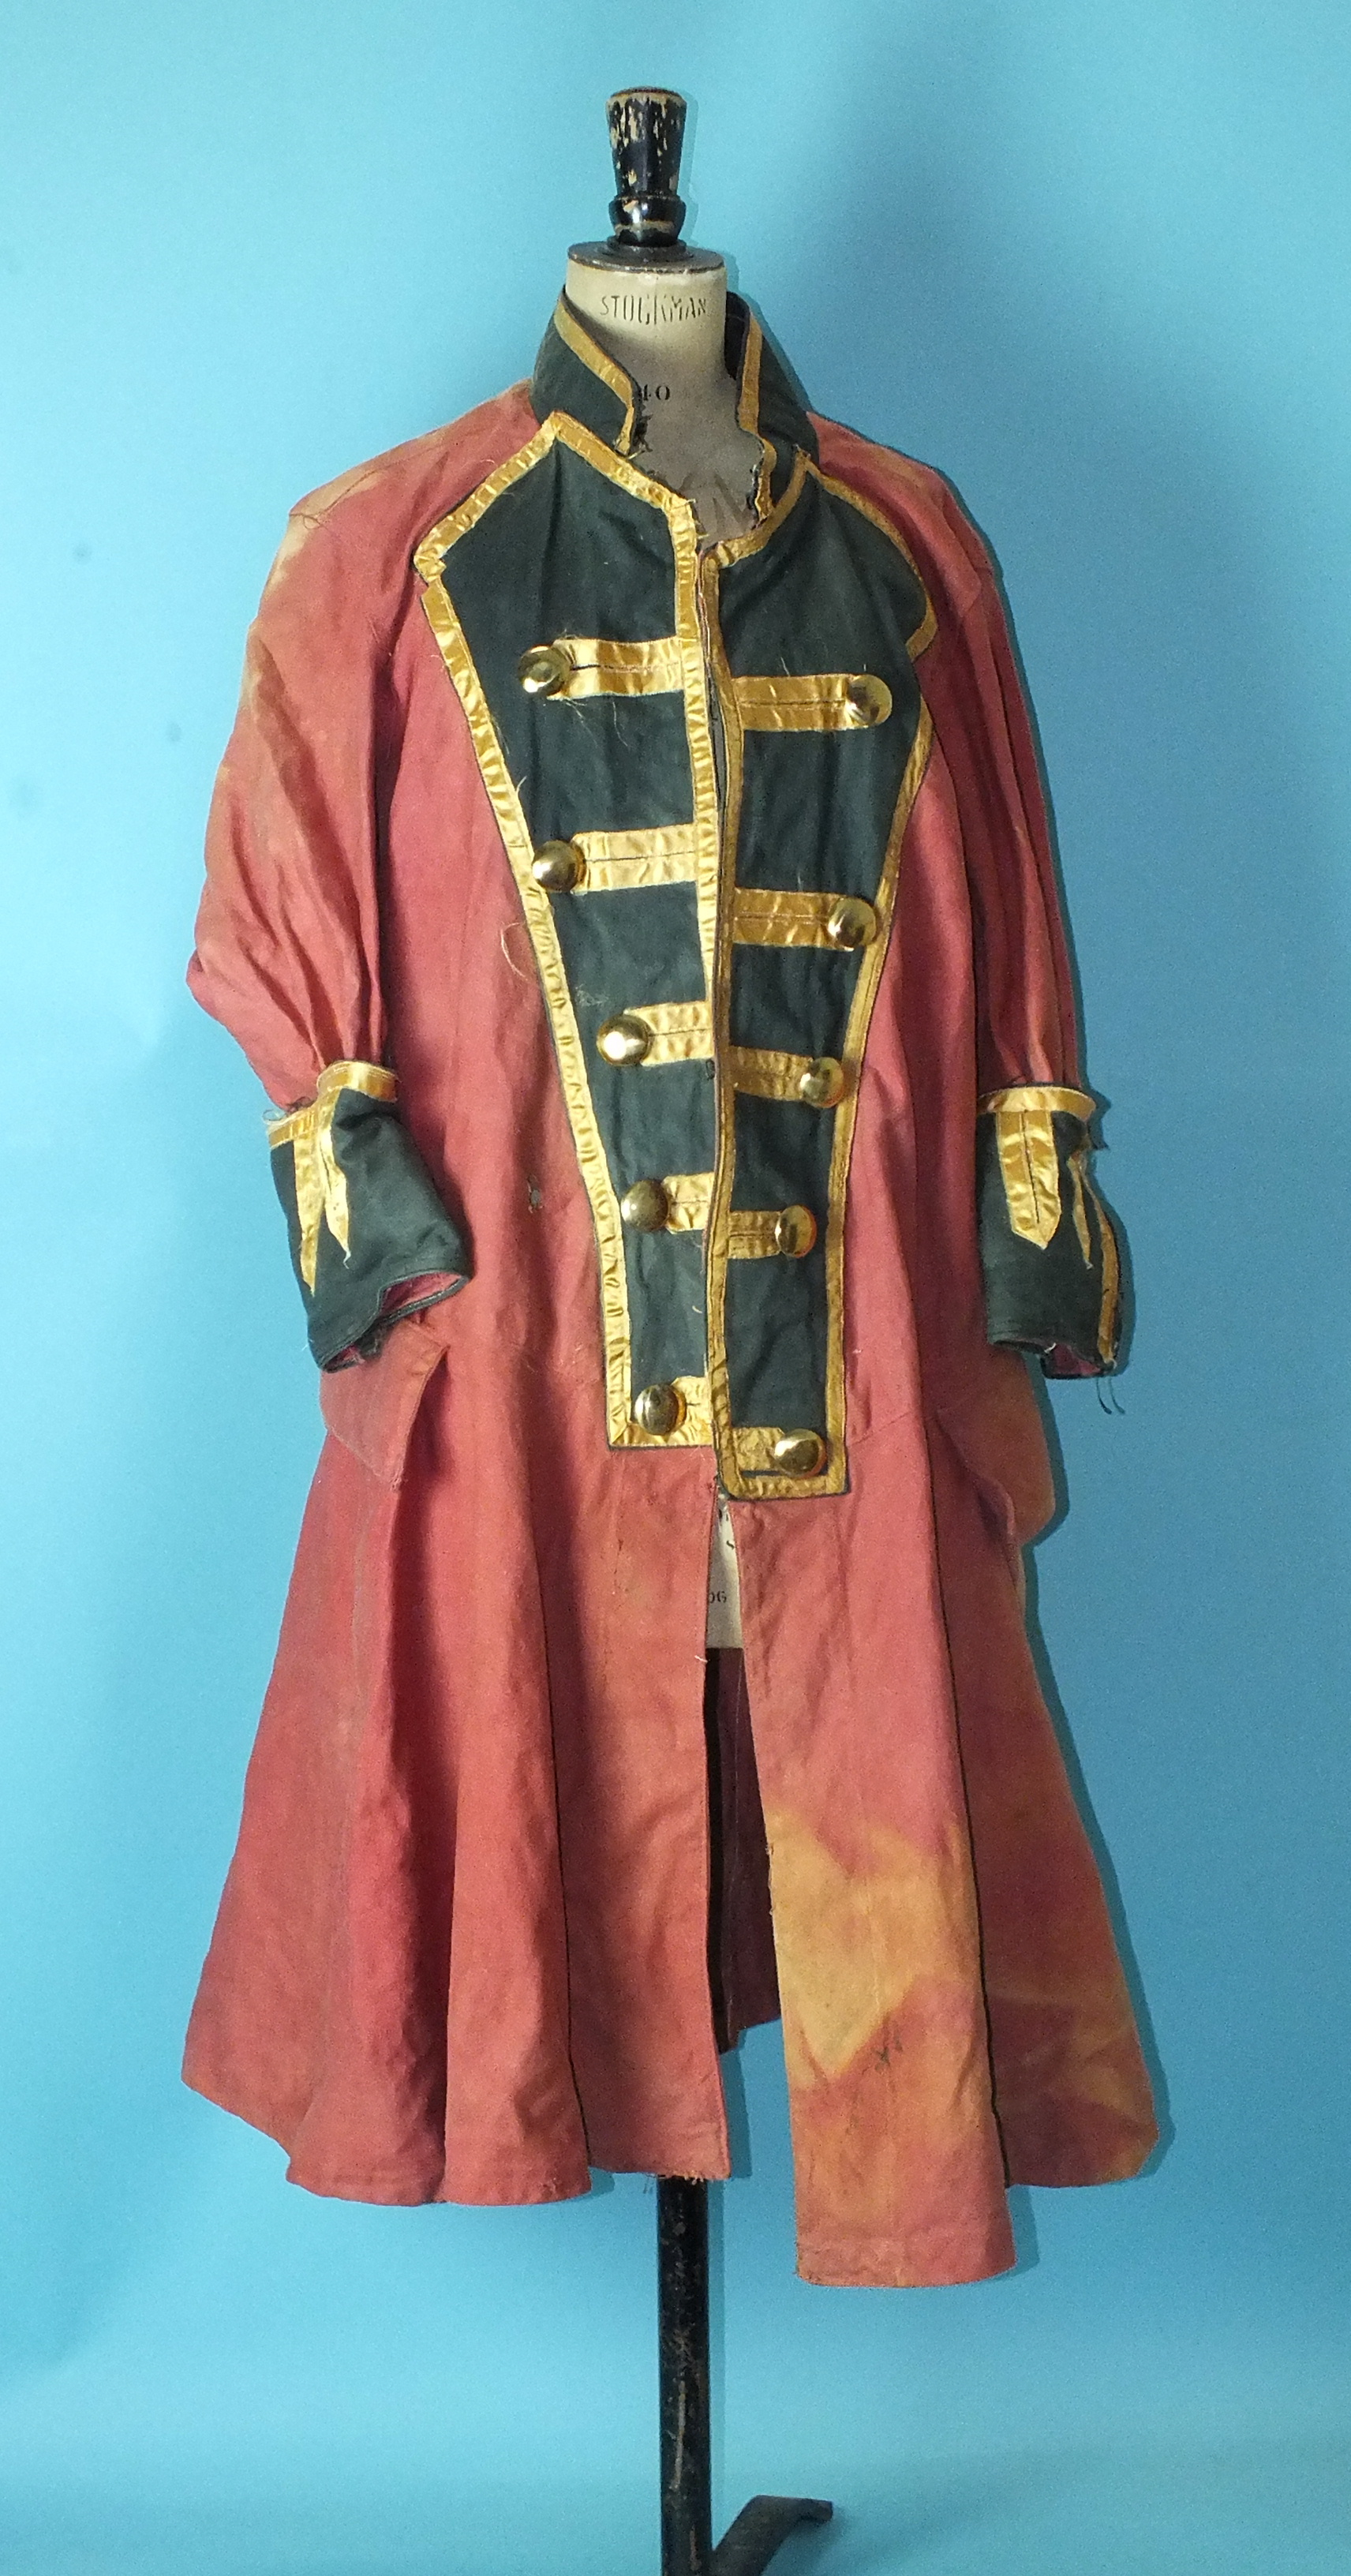 Lot 526 - A canvas 18th century-style frock coat, a fur coat and other dressing-up items.